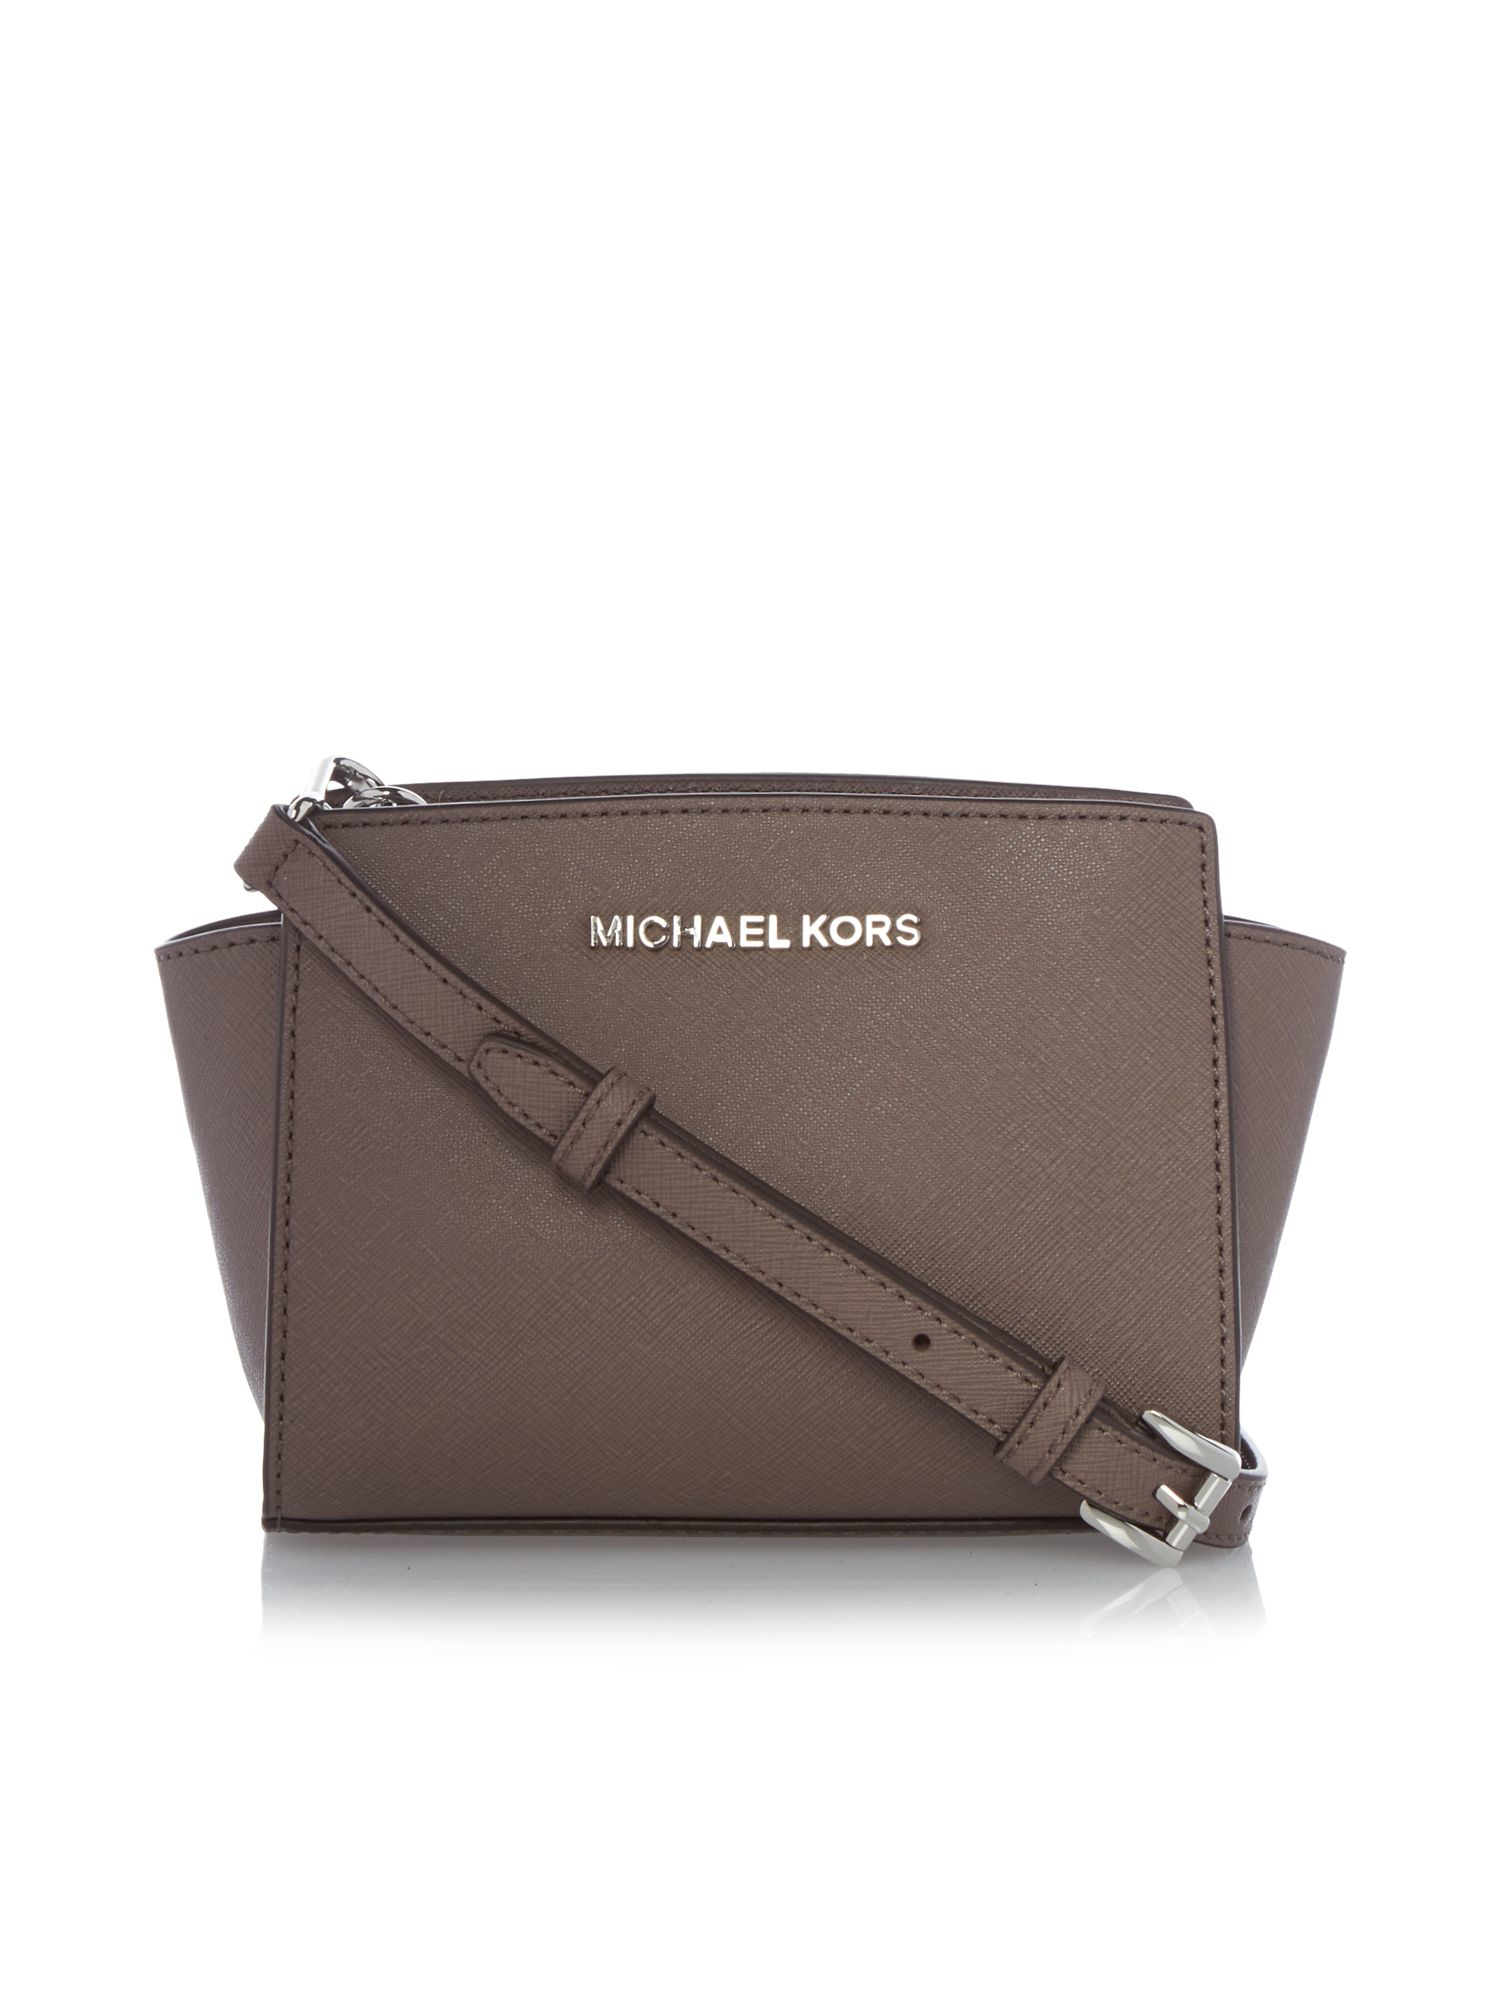 717ddff2d discount selma saffiano leather medium satchel michael kors 2f069 2ce45;  coupon for michael kors selma taupe mini cross body bag in brown lyst a4736  dc6e4